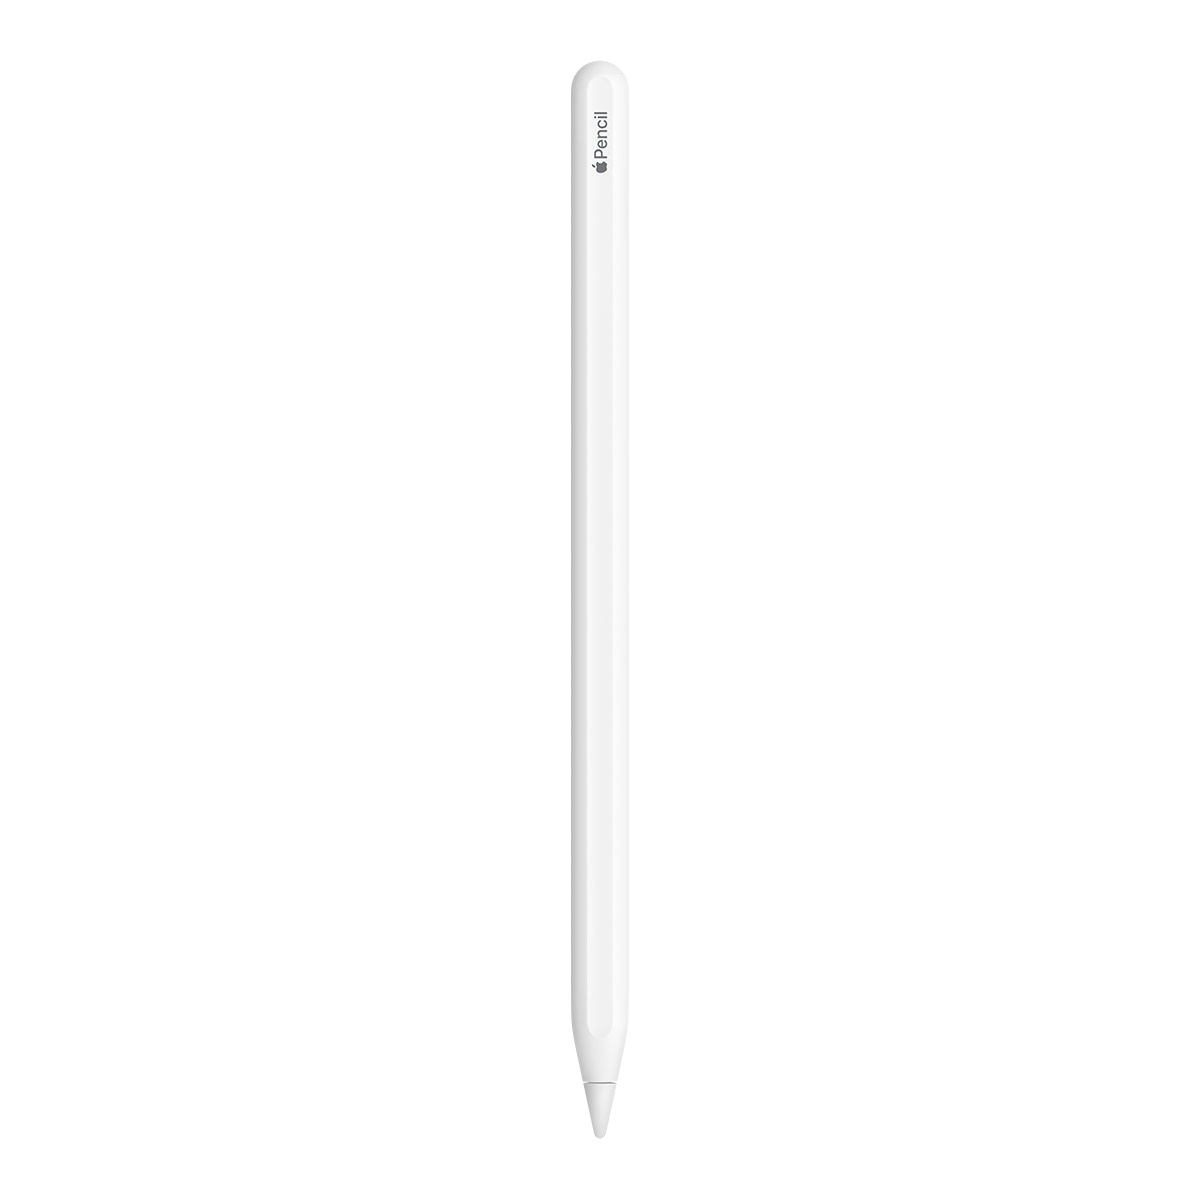 Apple Pencil for iPad (2nd Generation)